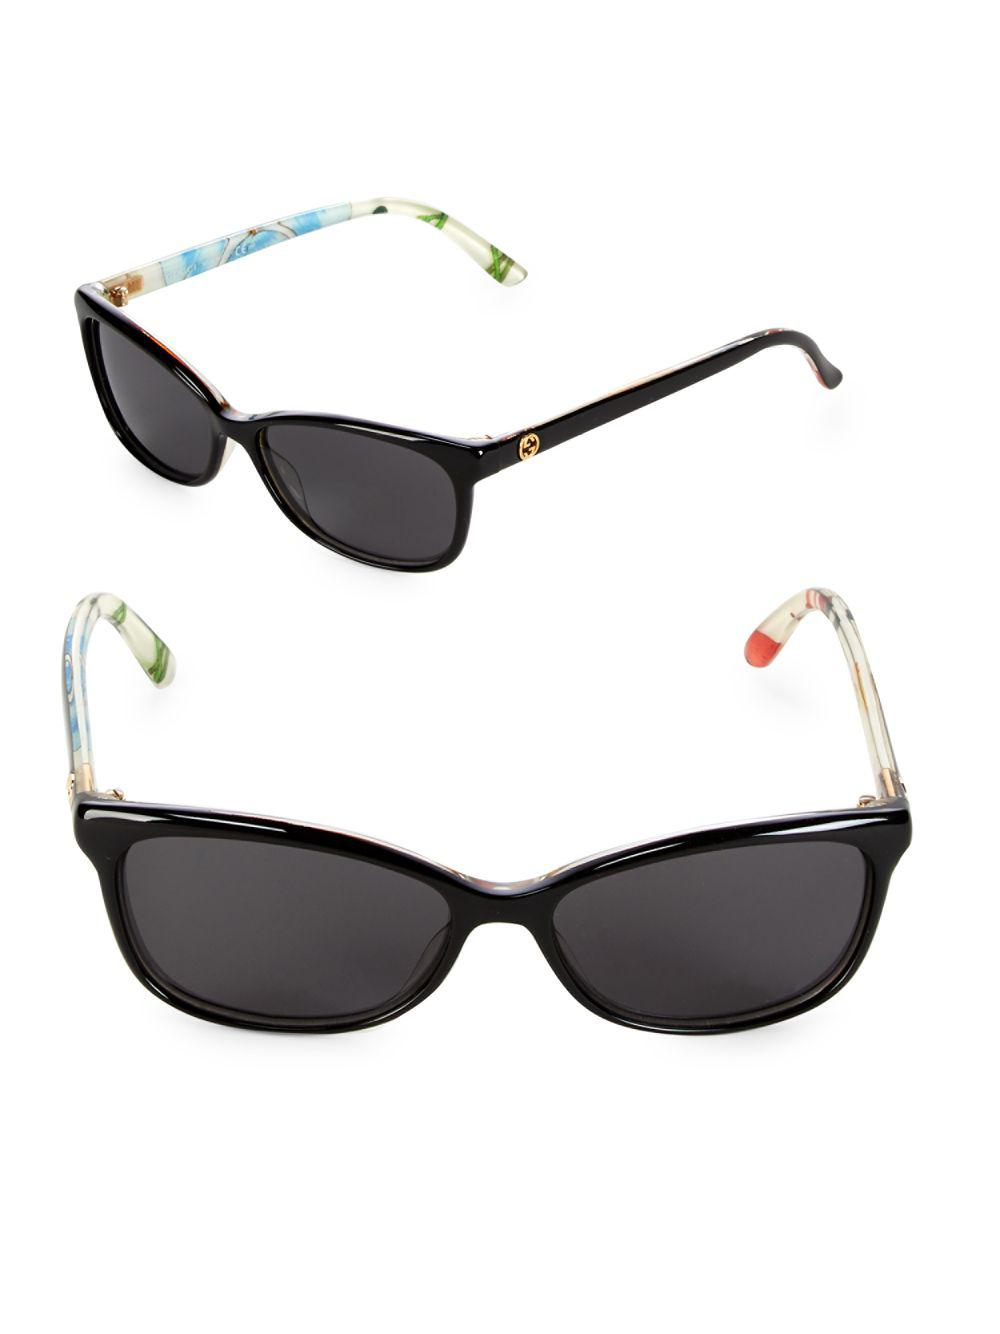 996a5b8ed872 Gucci 55mm Floral Cat-eye Sunglasses in Black - Lyst